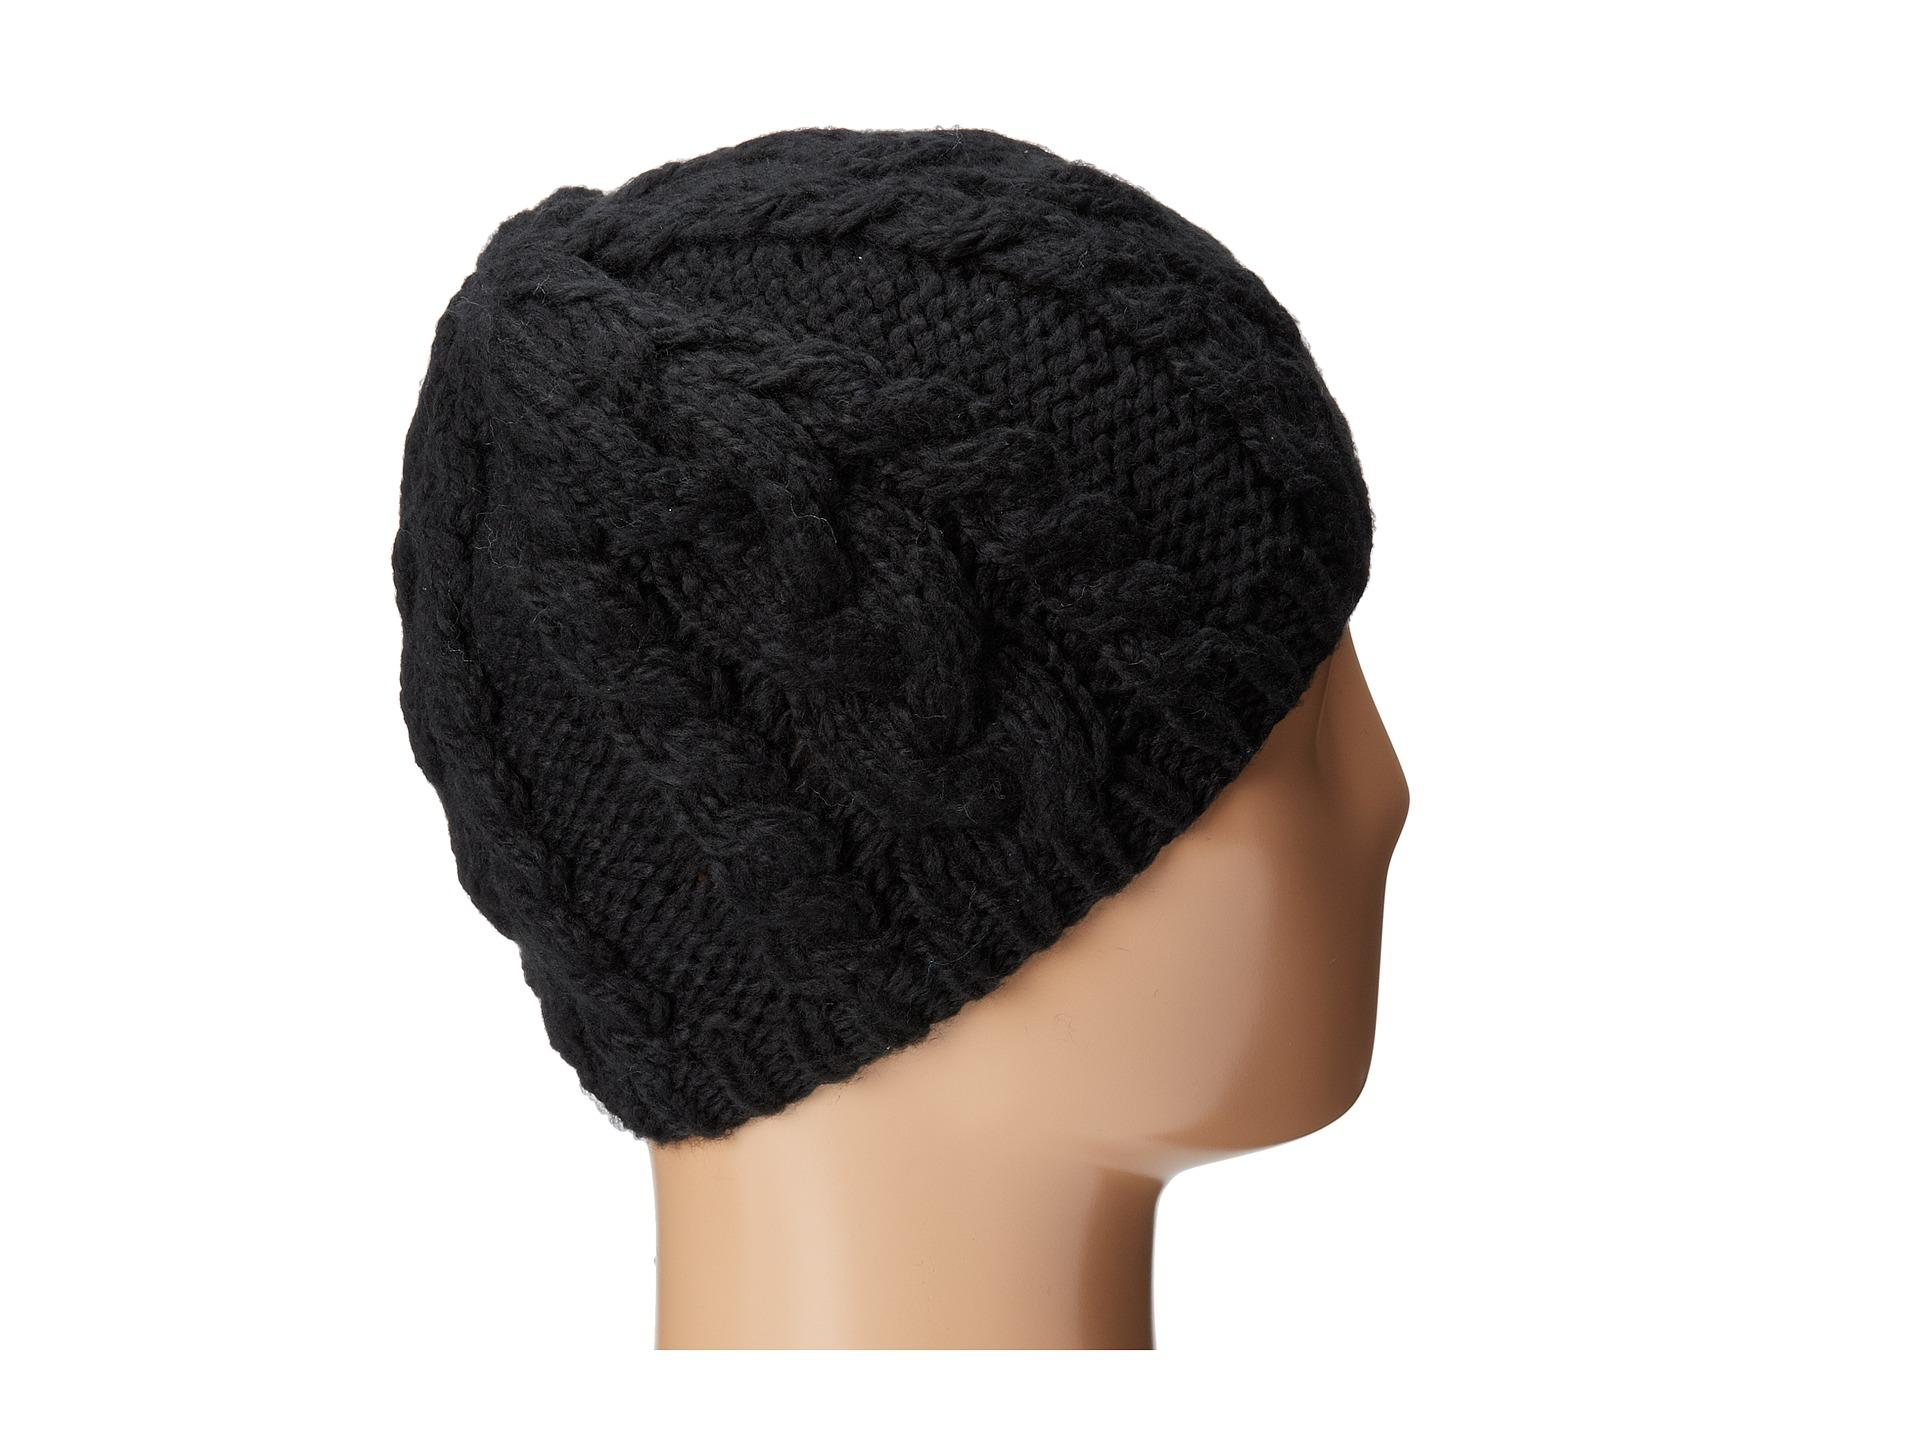 San diego hat company Cable Stitch Knit Beanie in Black Lyst